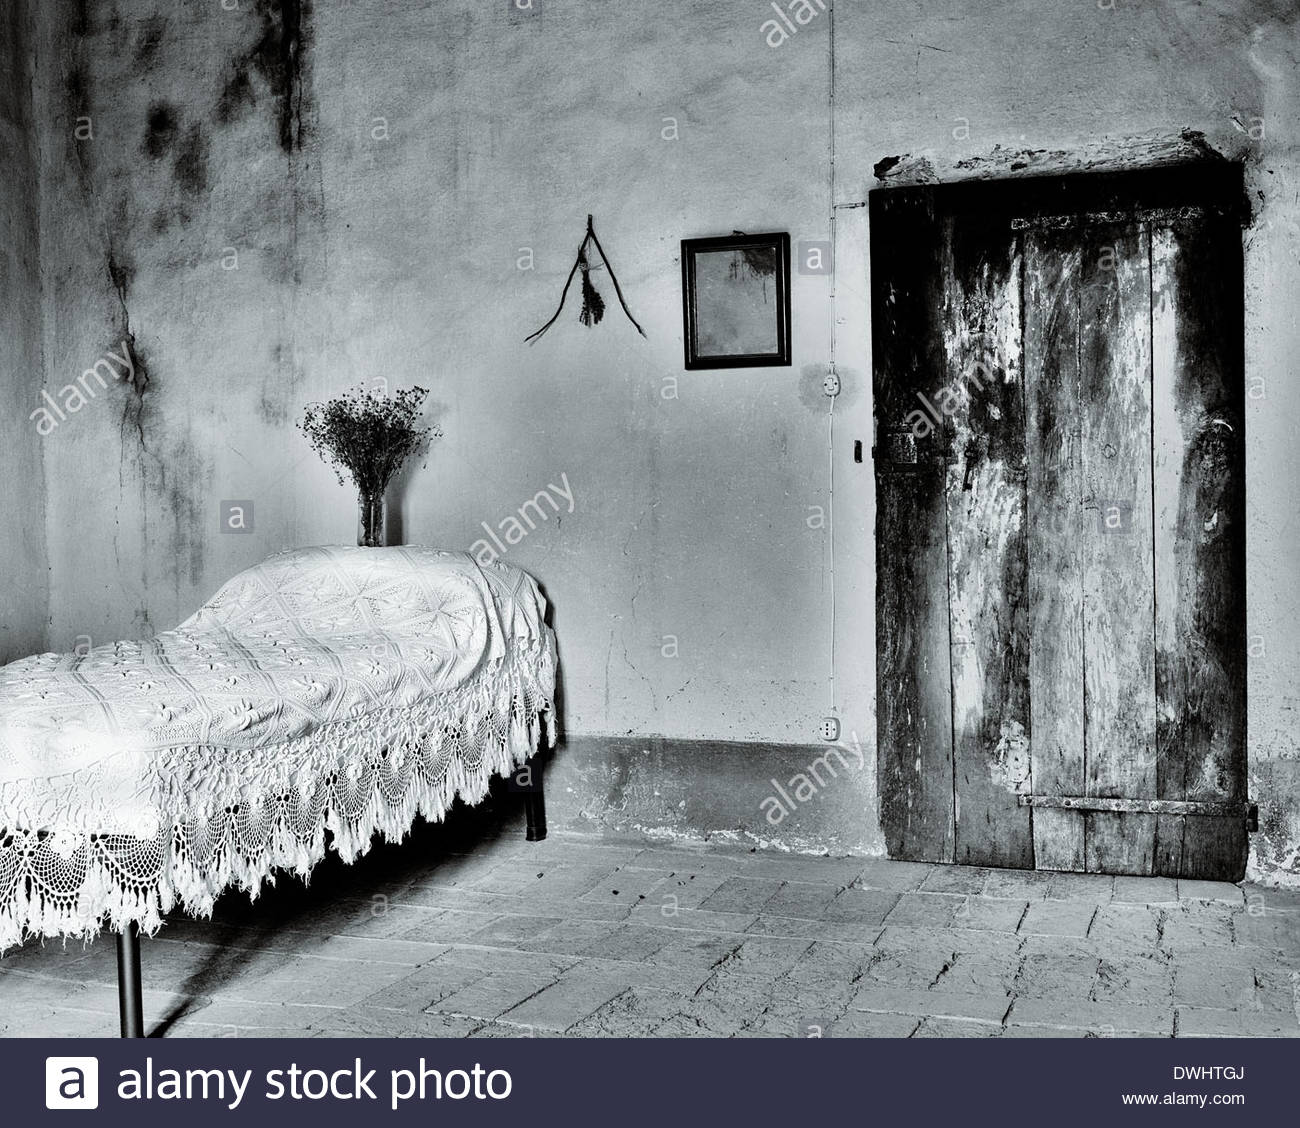 A vase of flowers on the pillow of a bed on the wall hangs a a vase of flowers on the pillow of a bed on the wall hangs a water diviner in an old house in tuscany italy amipublicfo Choice Image